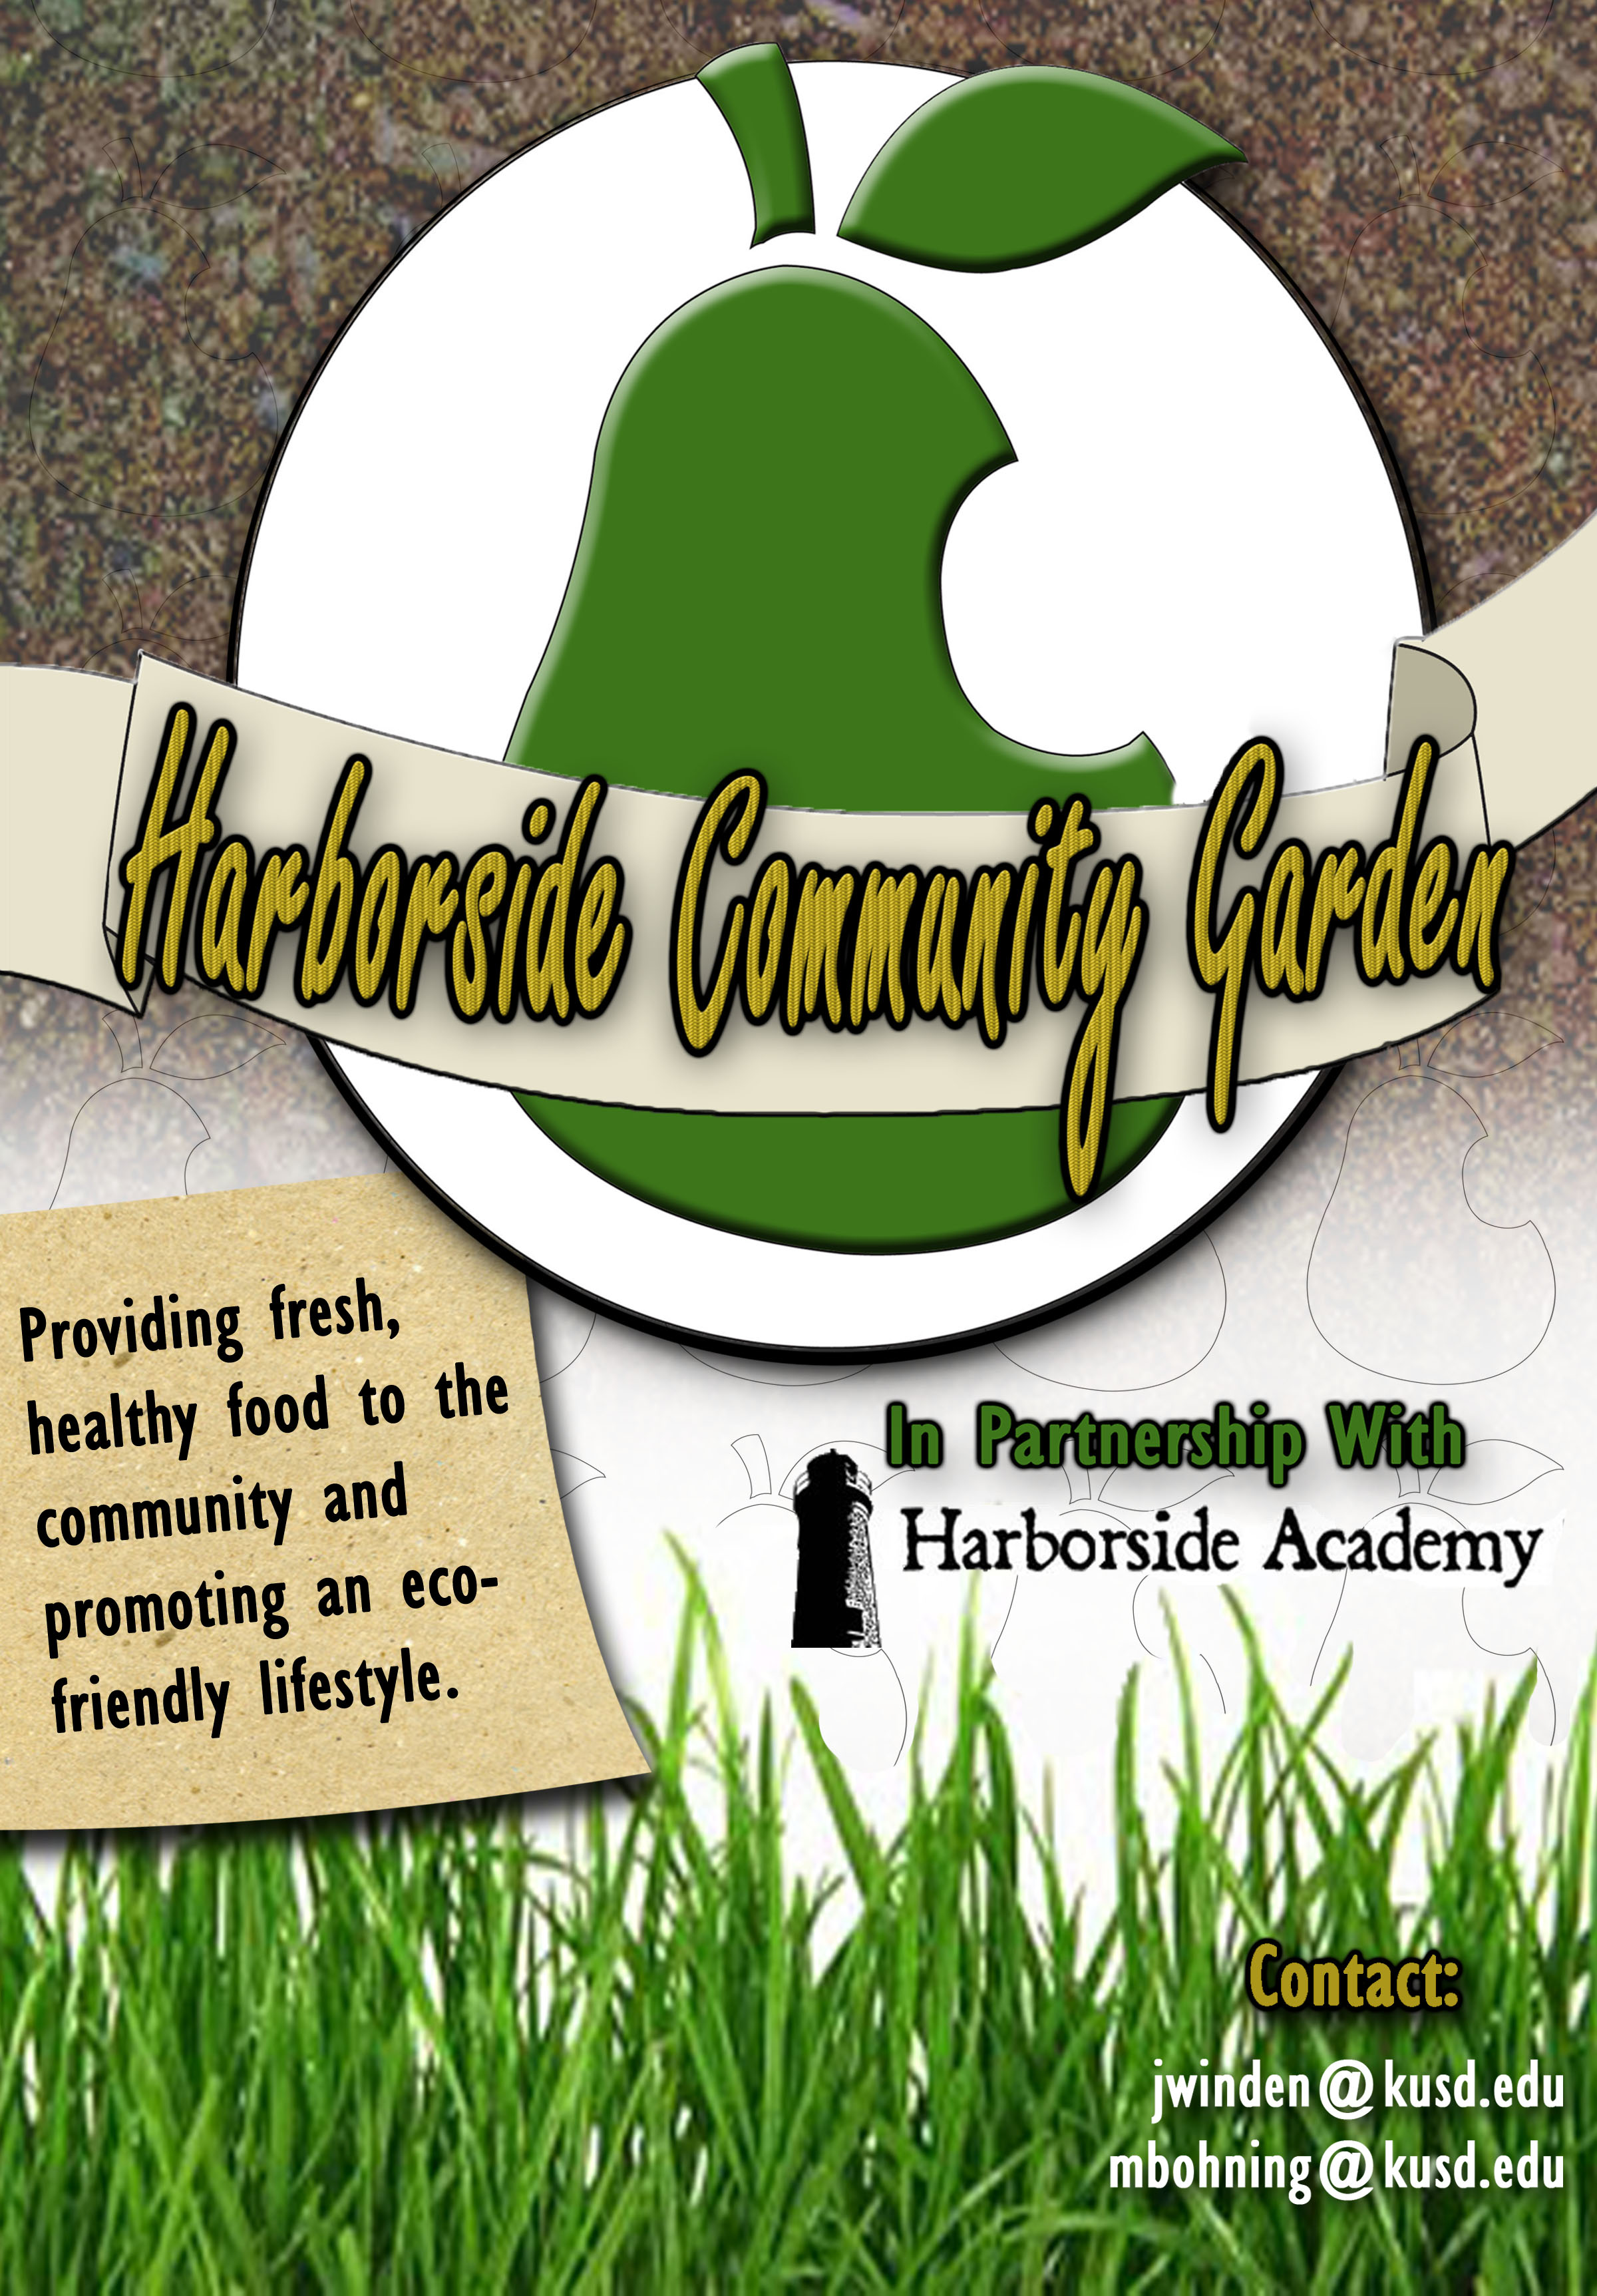 flyer for the harbor side community garden